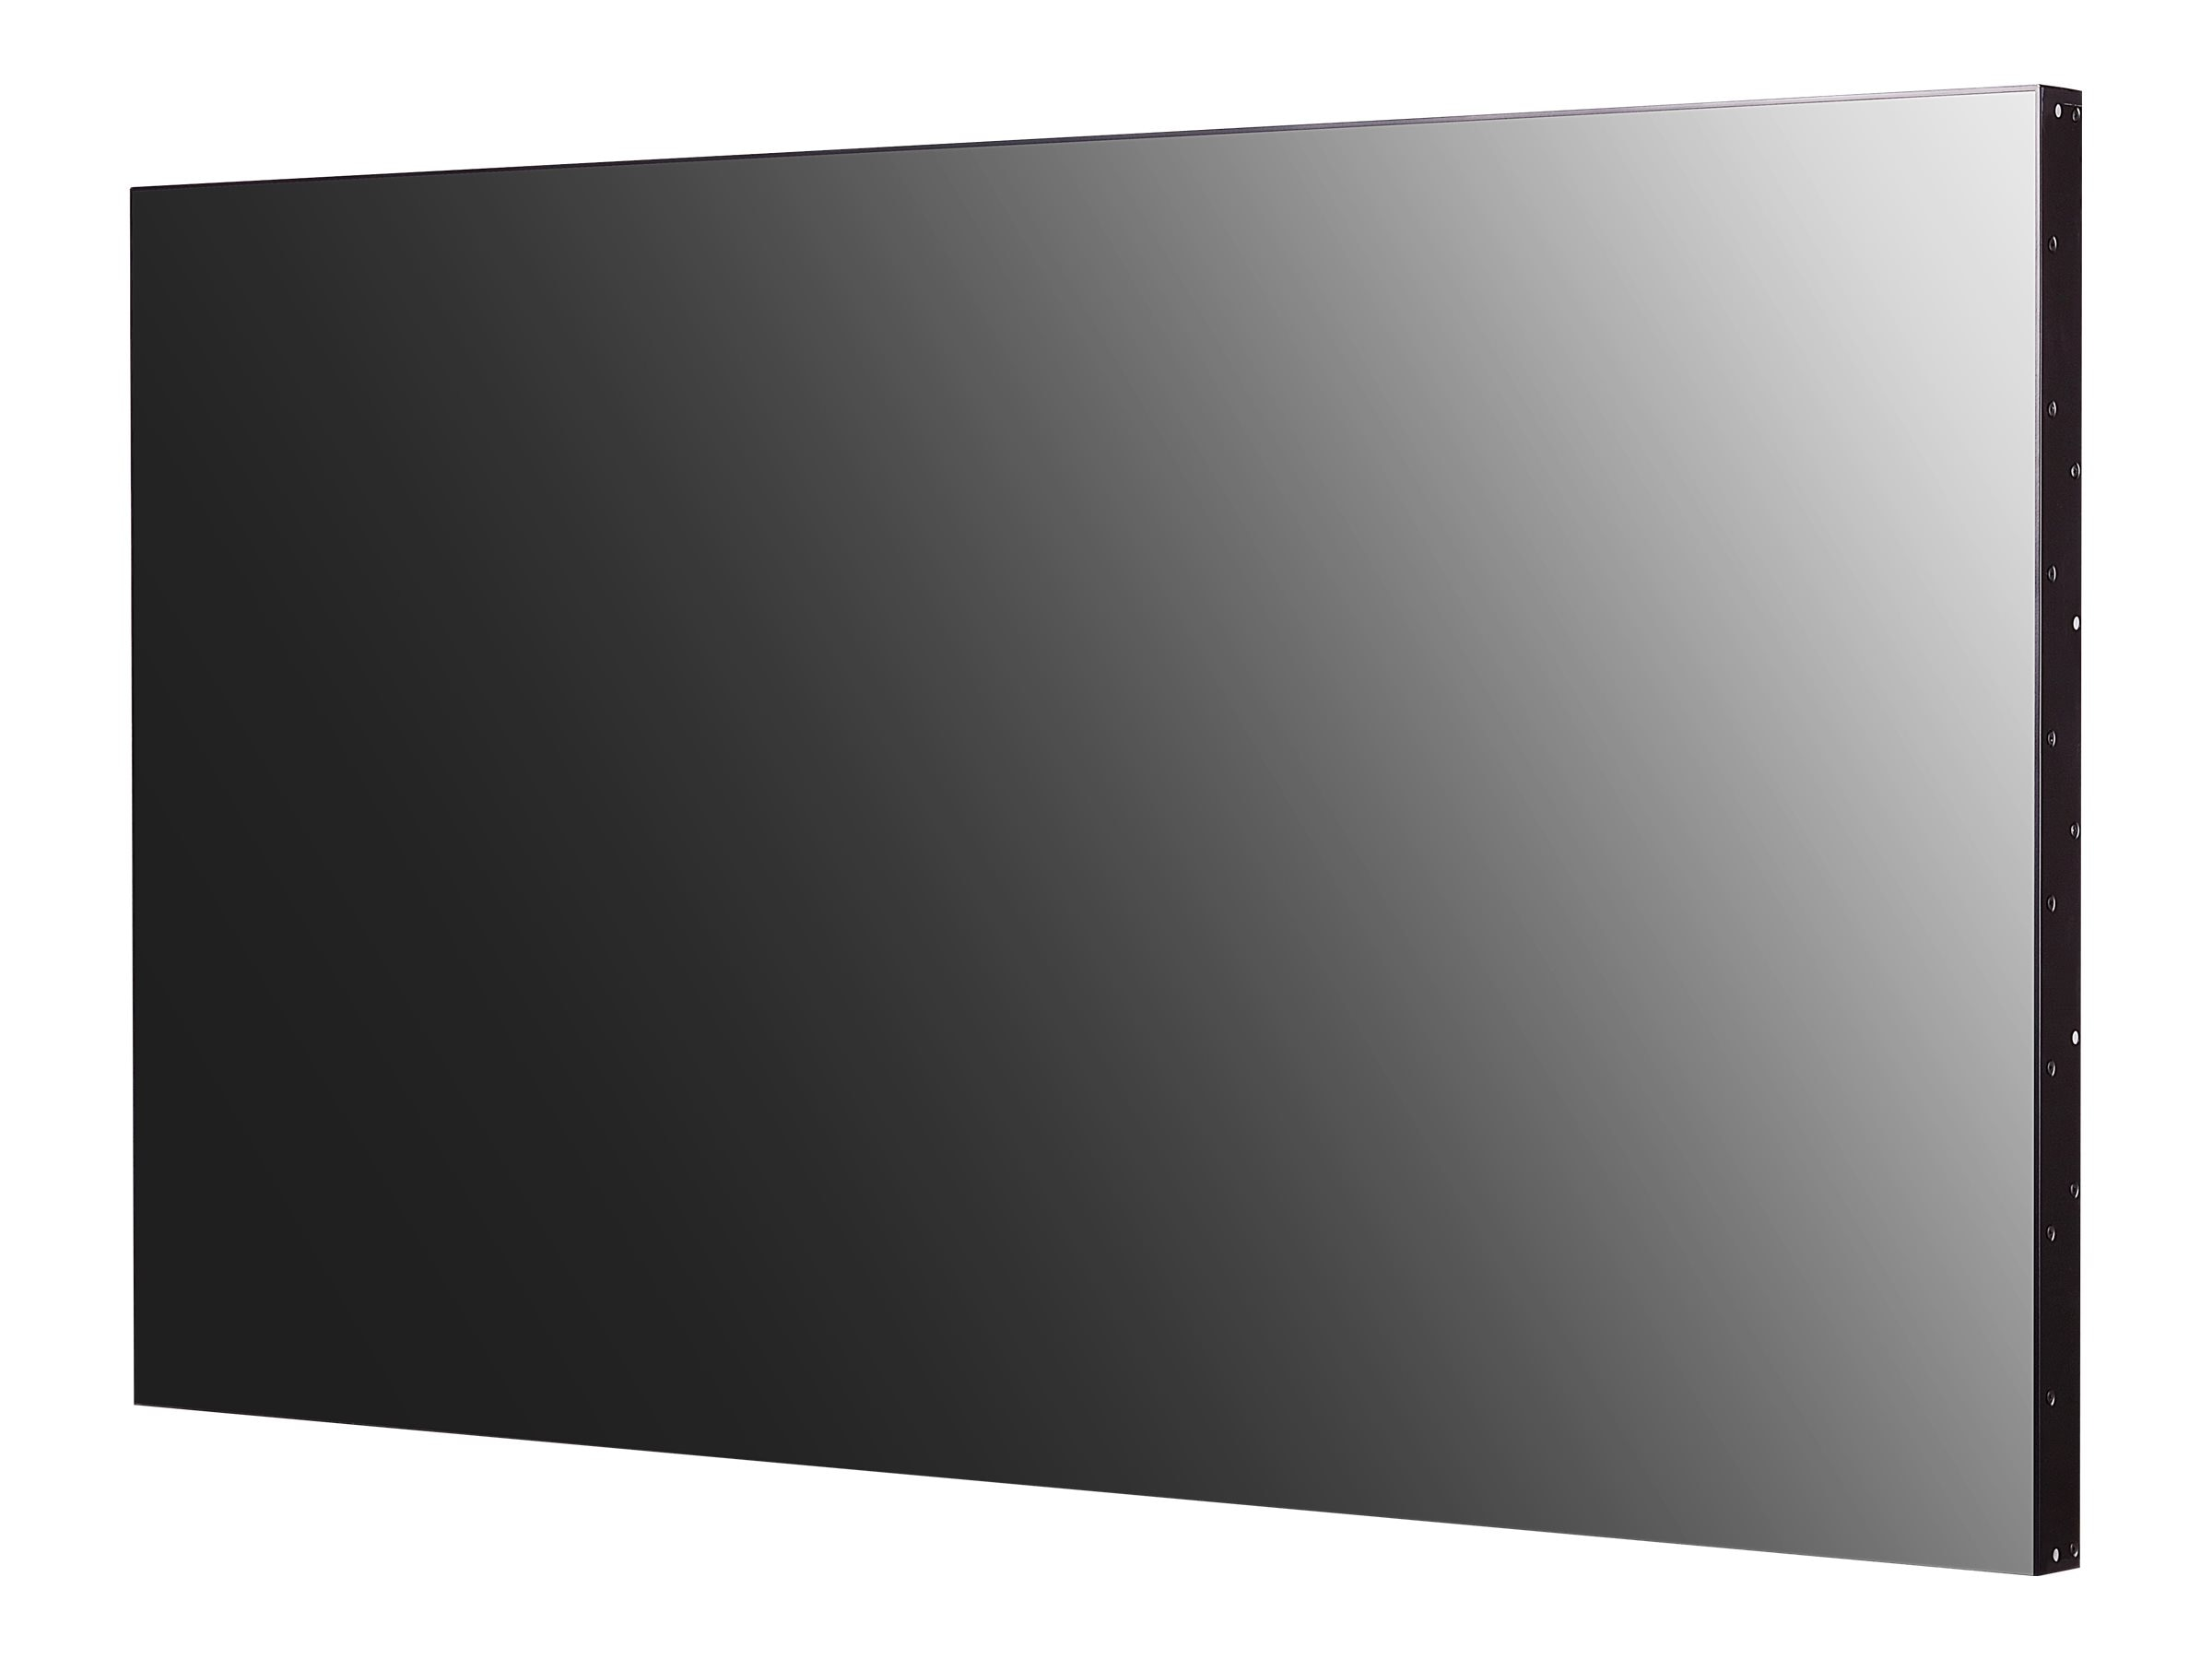 LG 49 VL5B-B Full HD LED-LCD Display, Black, 49VL5B-B